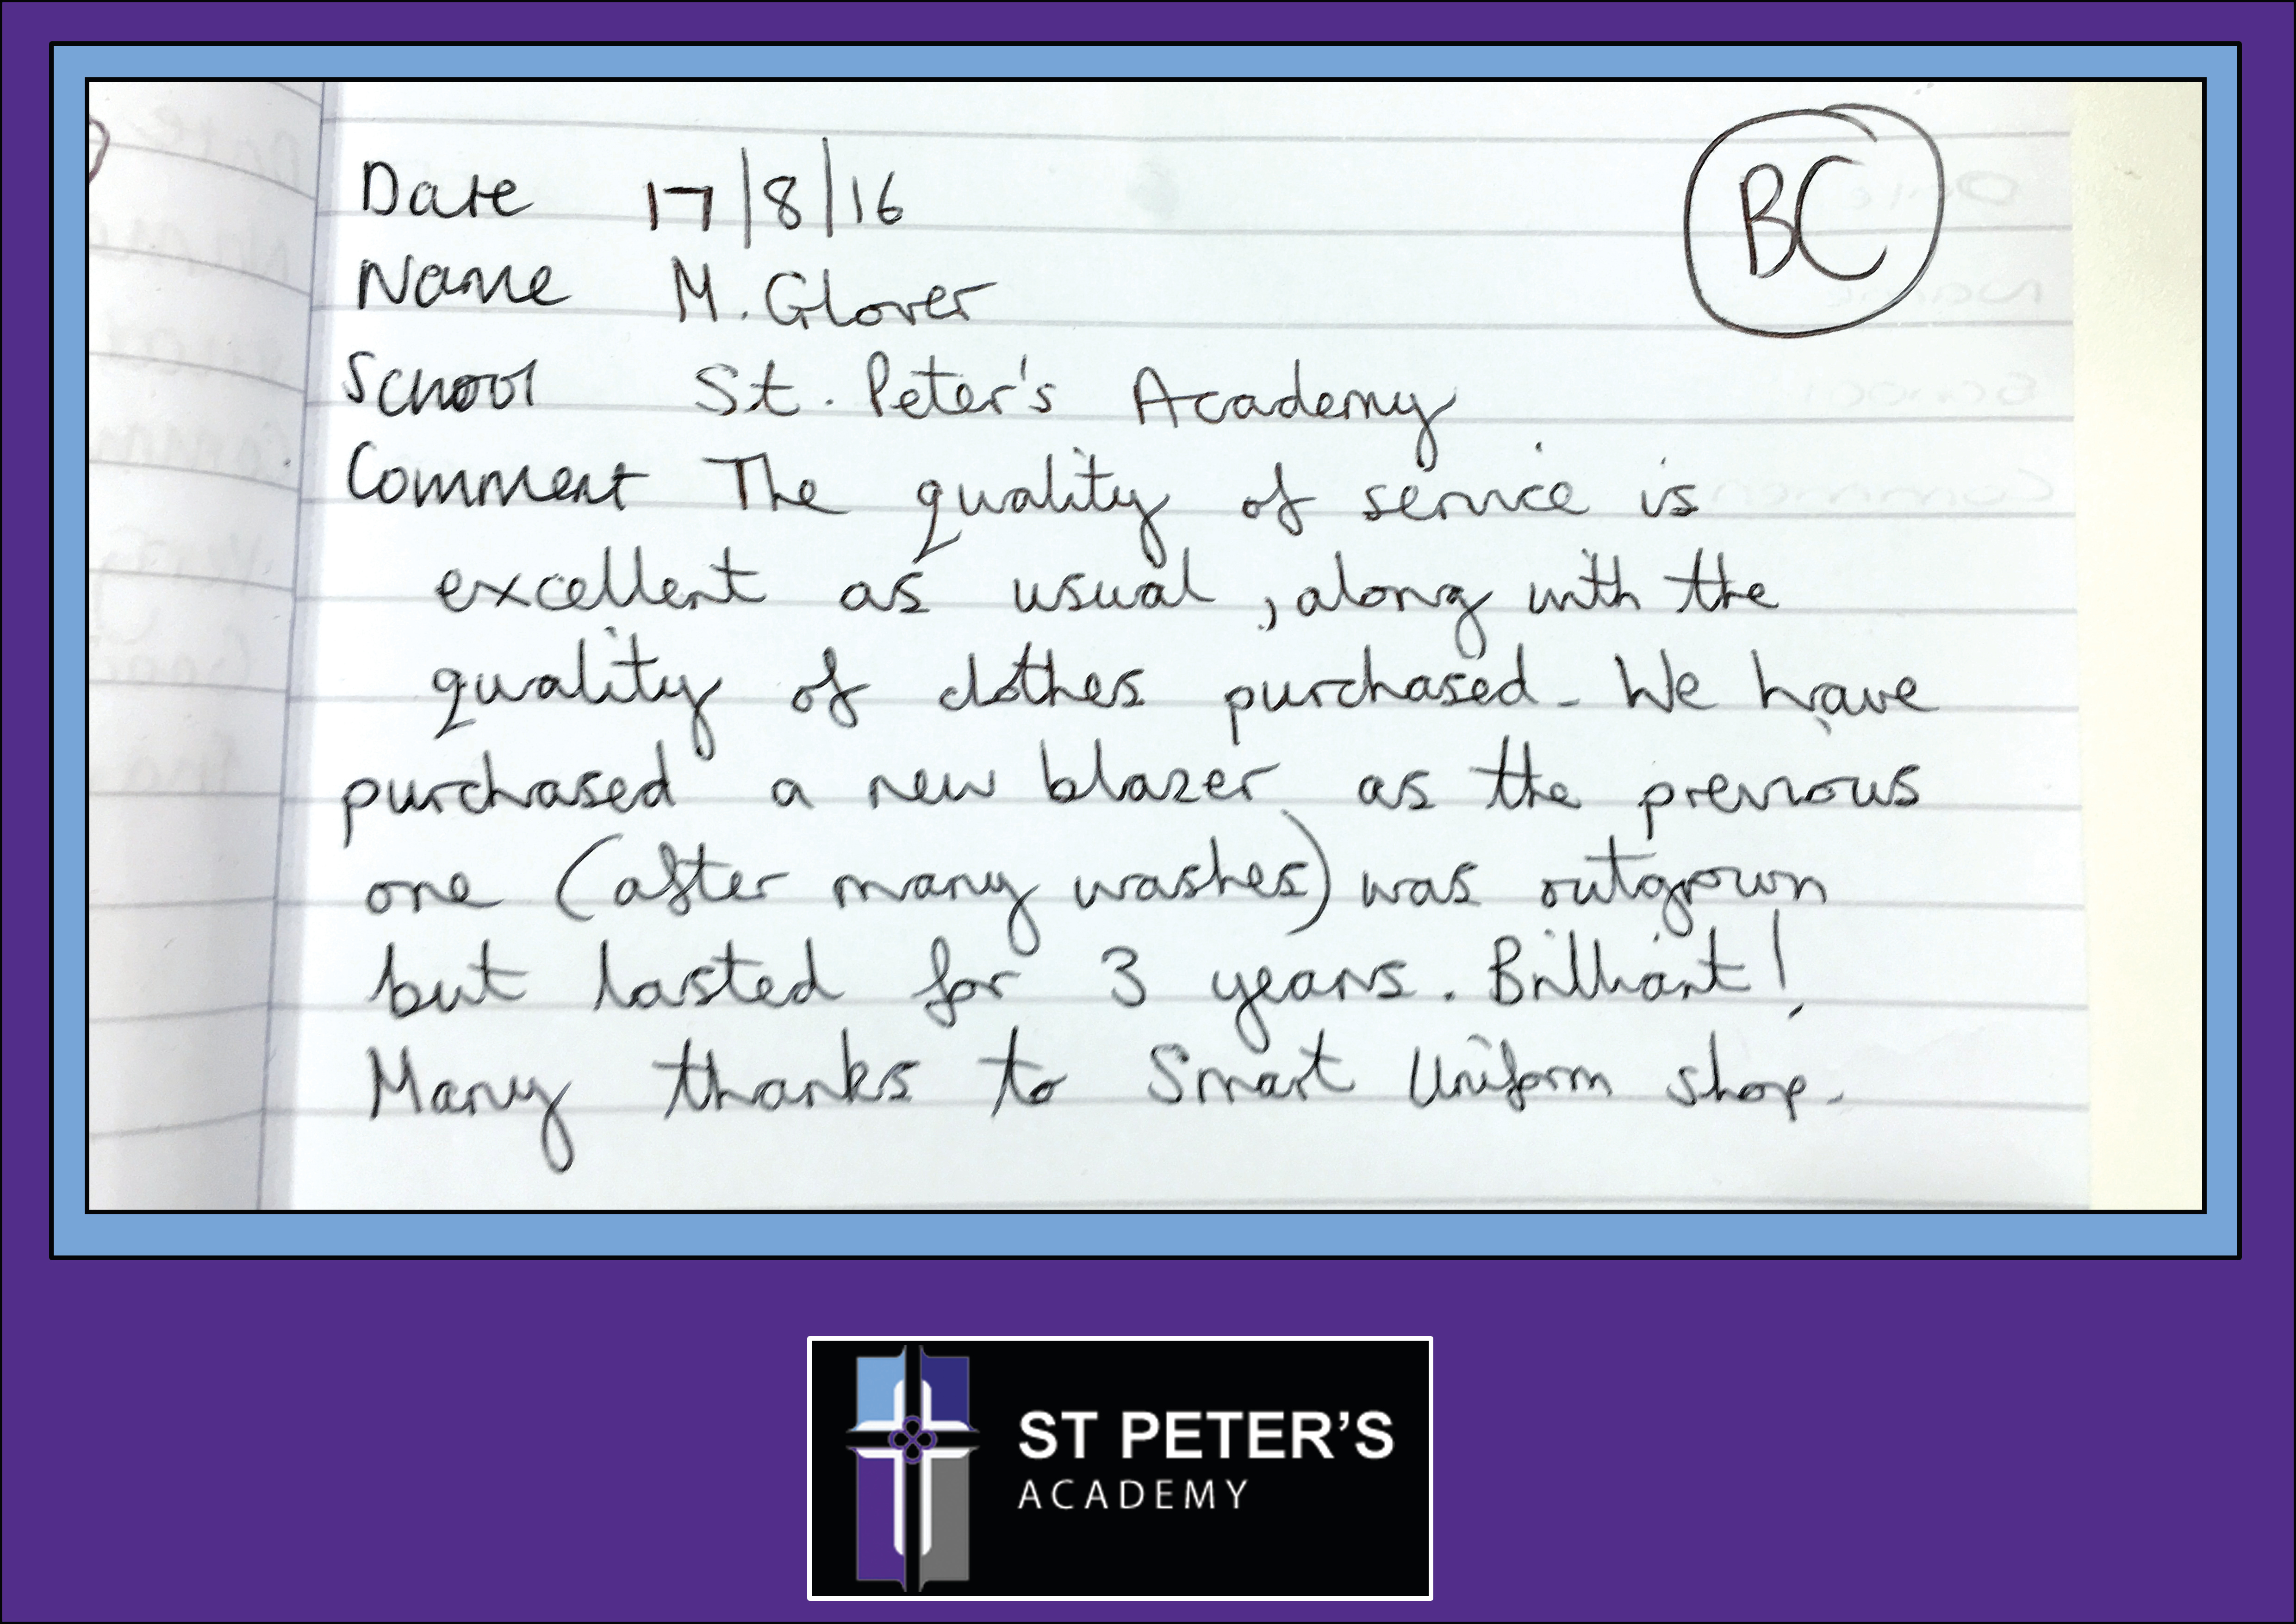 ST PETERS ACADEMY testimonial